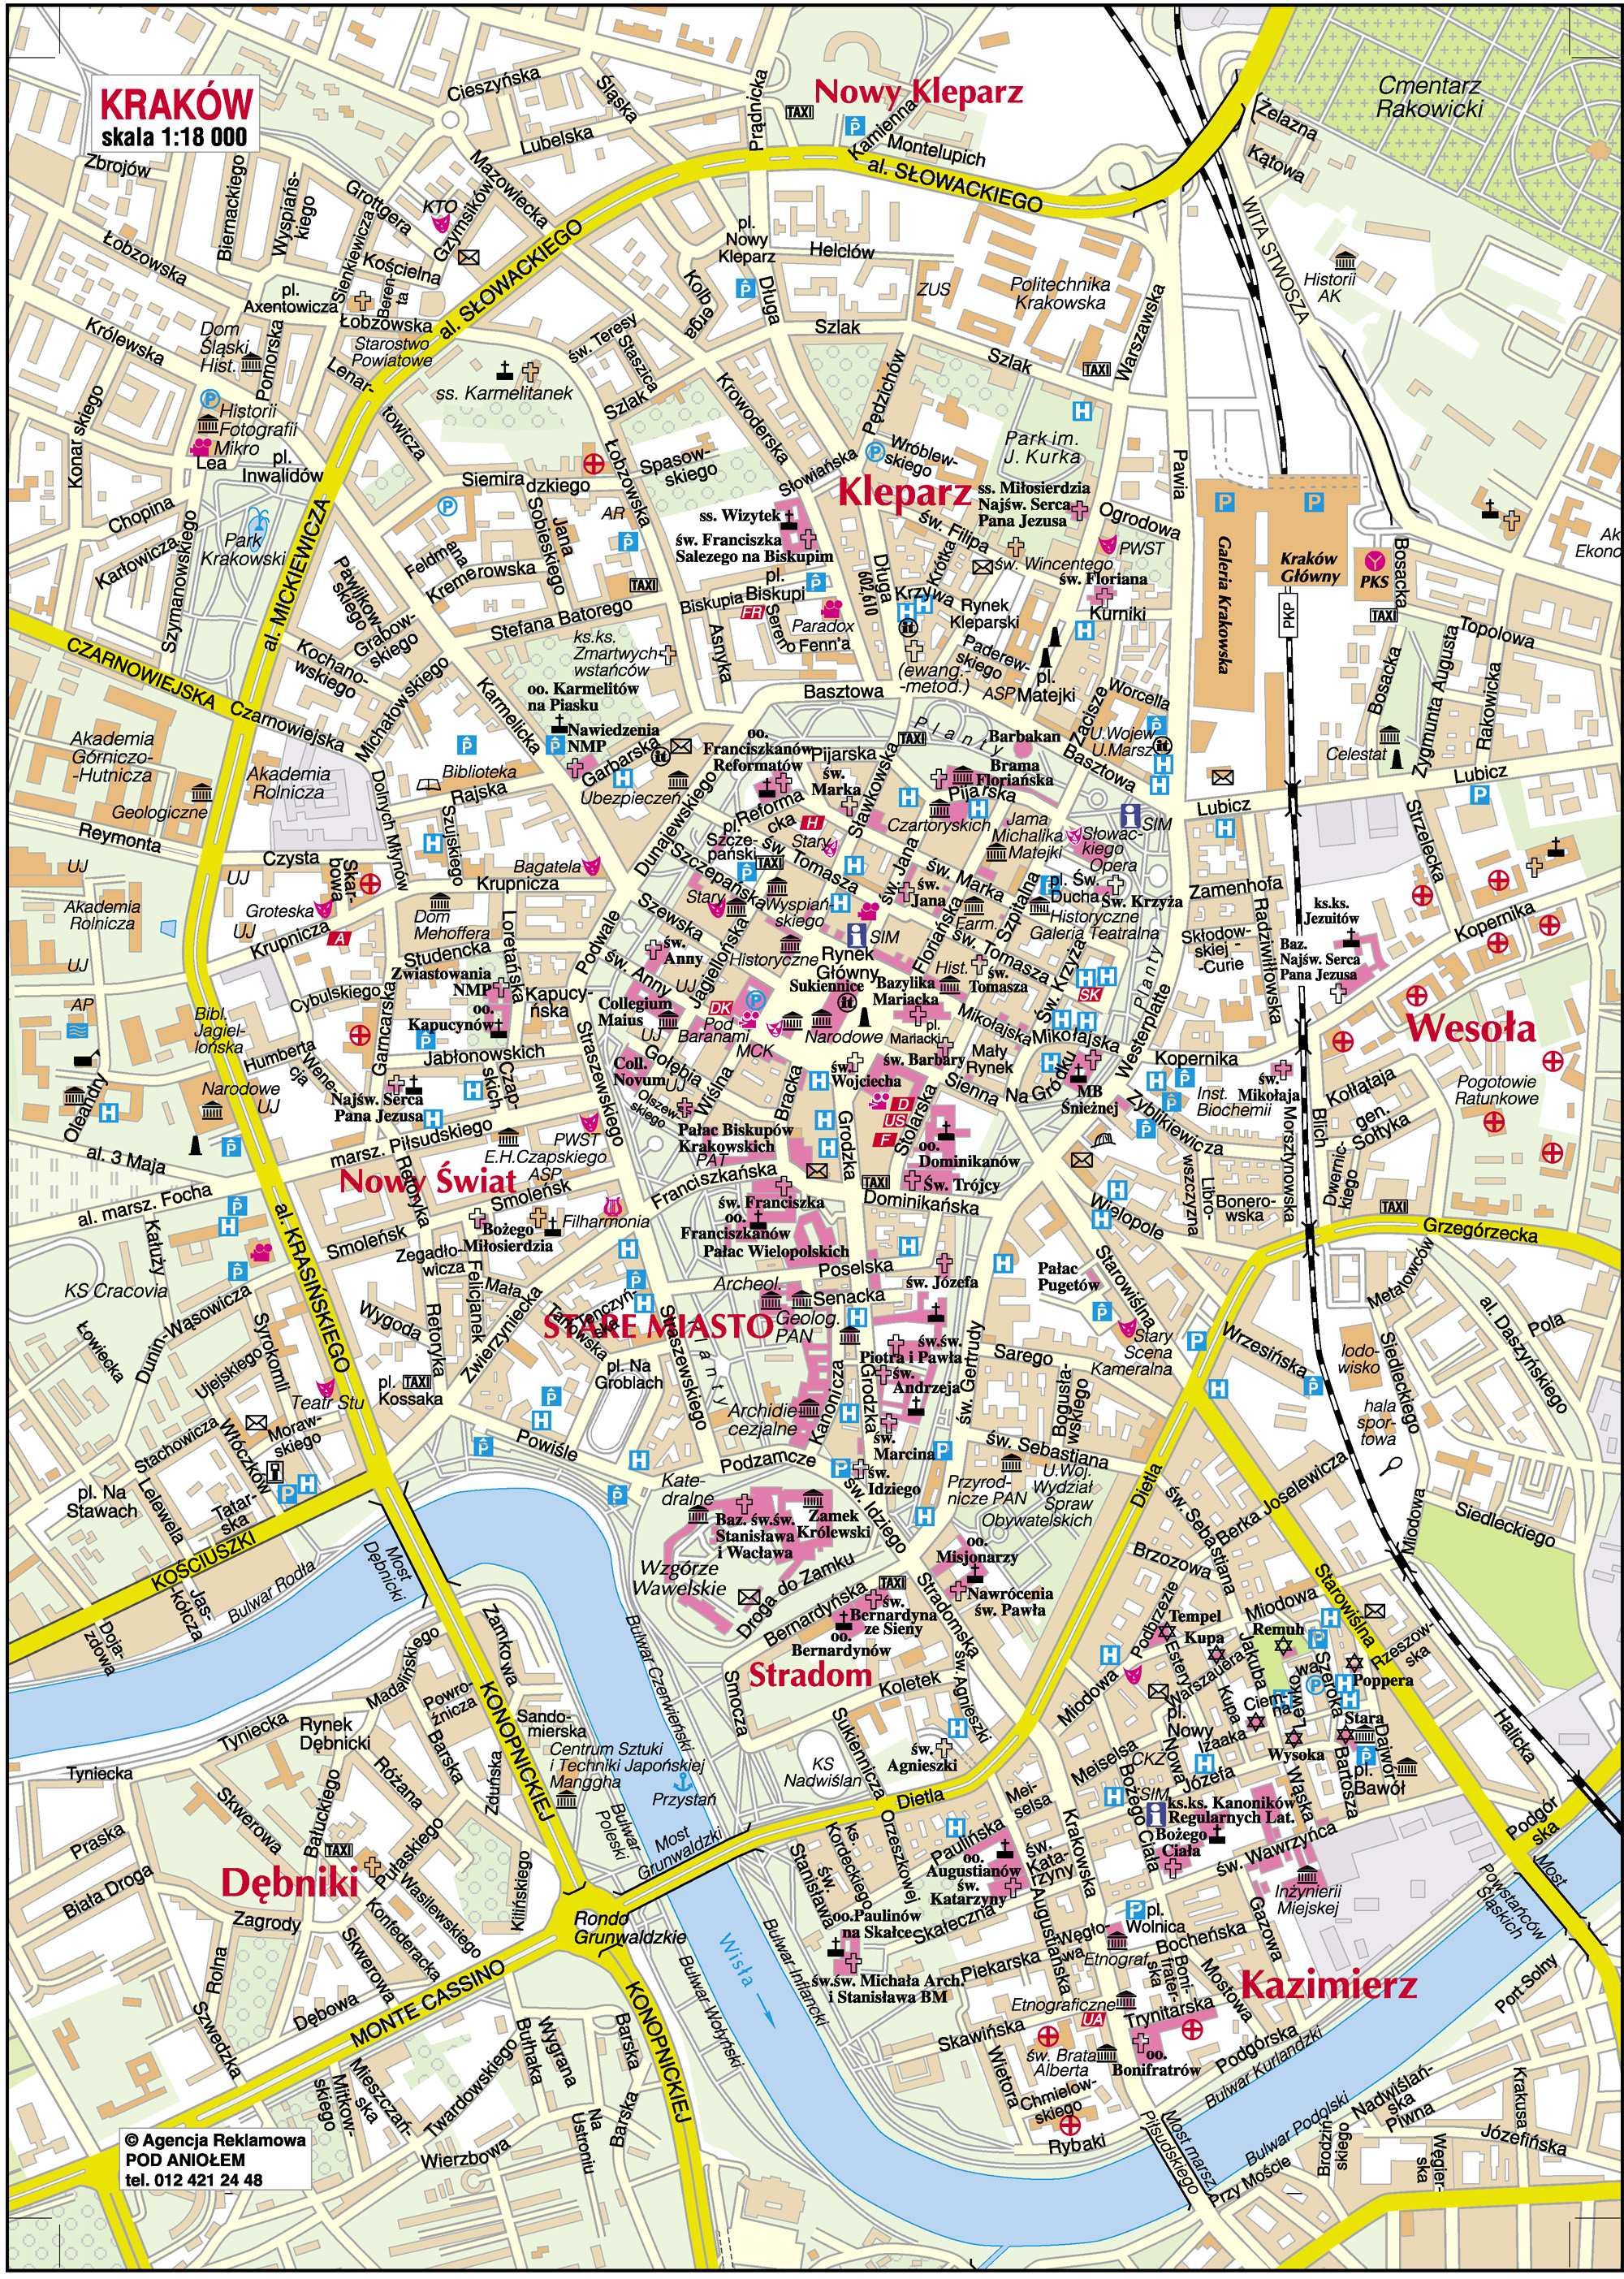 cracóvia mapa Large Krakow Maps for Free Download and Print | High Resolution  cracóvia mapa